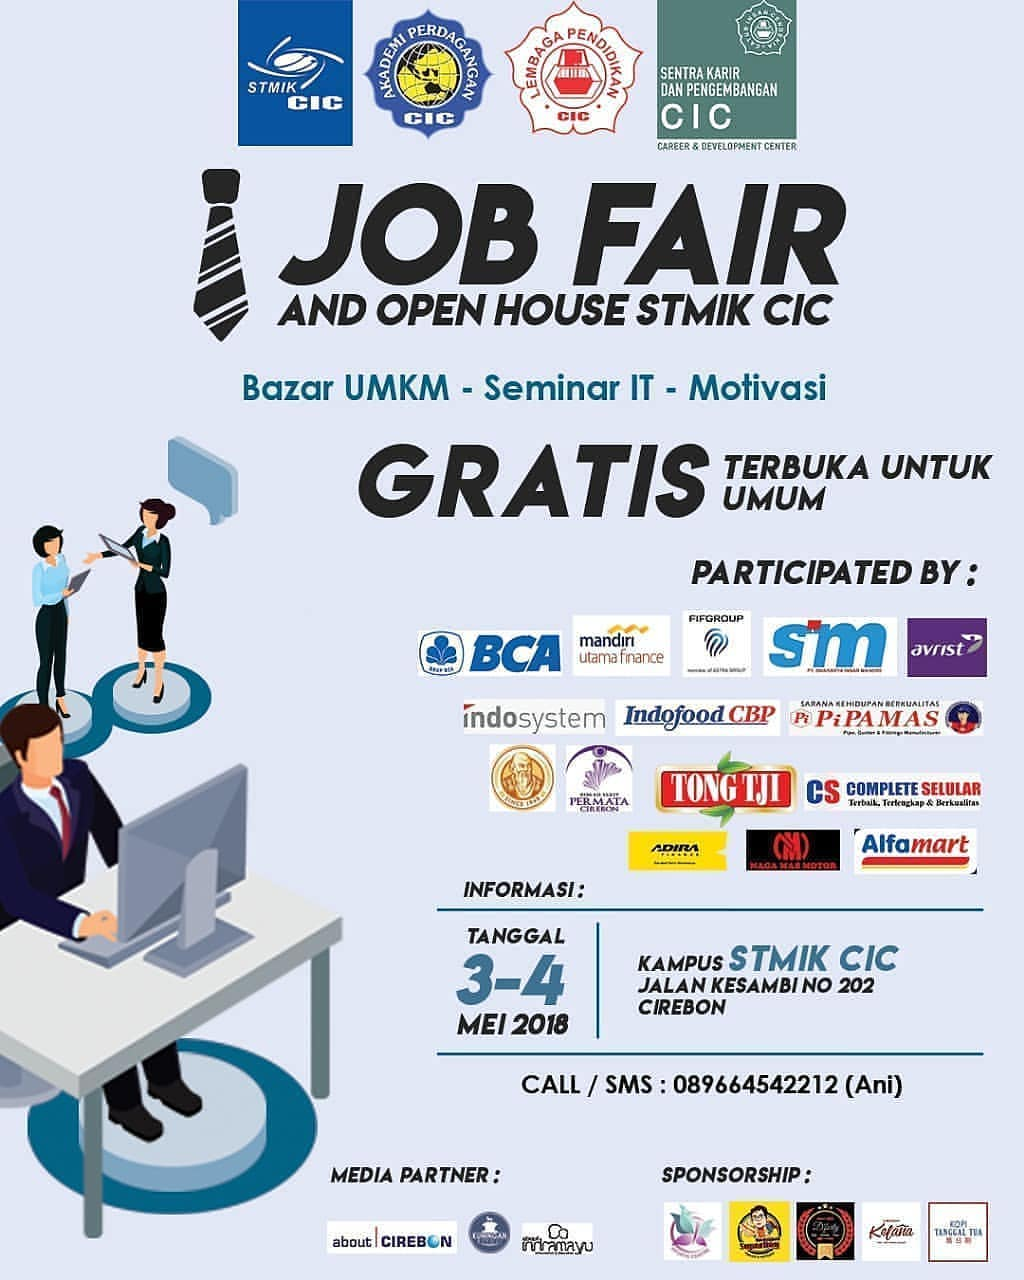 Job Fair &Open House STMIK CIC - Cirebon, 3-4 Mei 2018